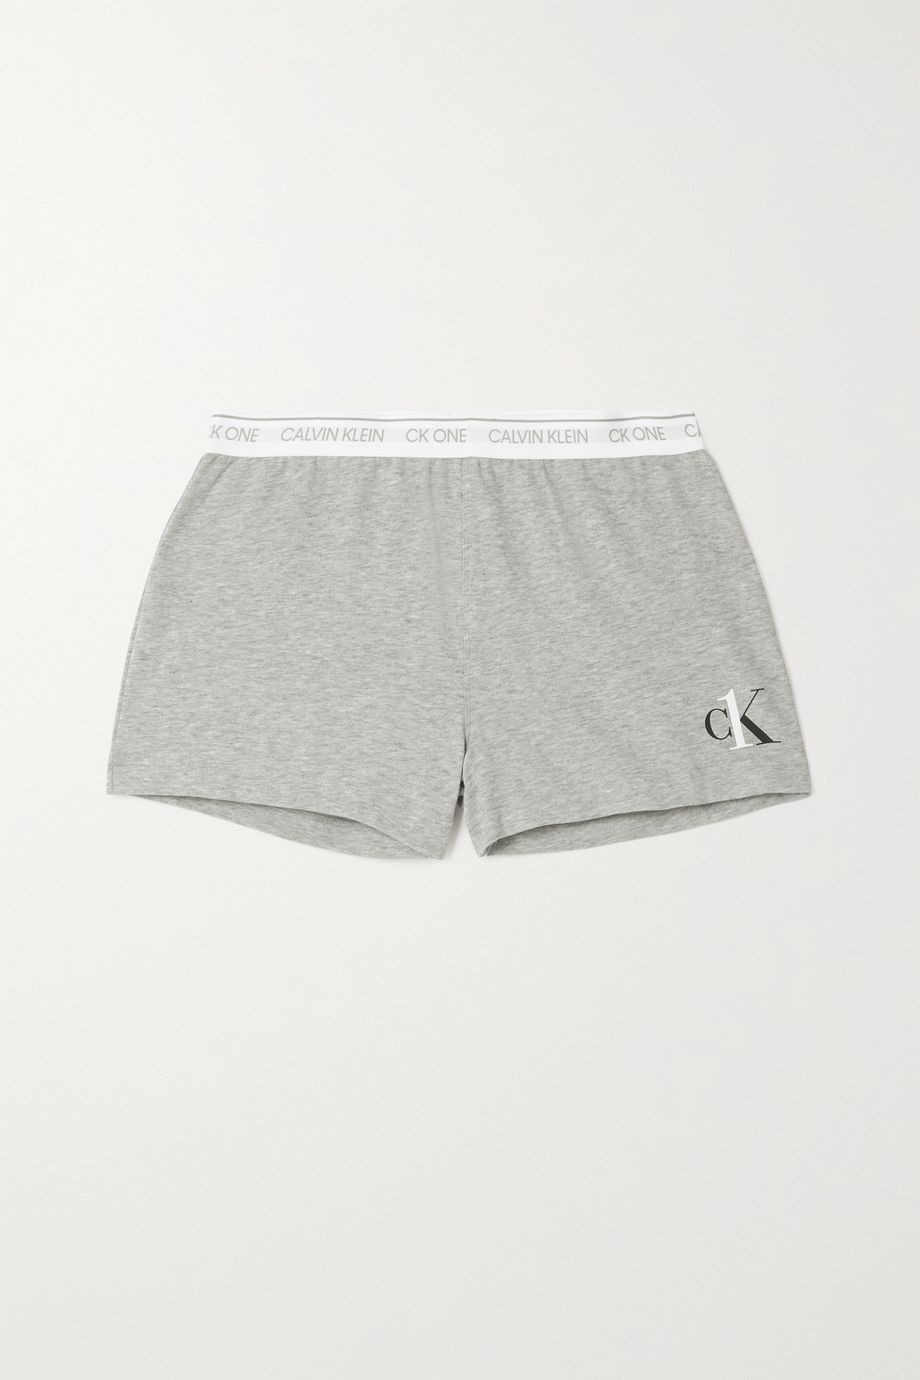 Calvin Klein Underwear Printed mélange cotton-blend jersey shorts